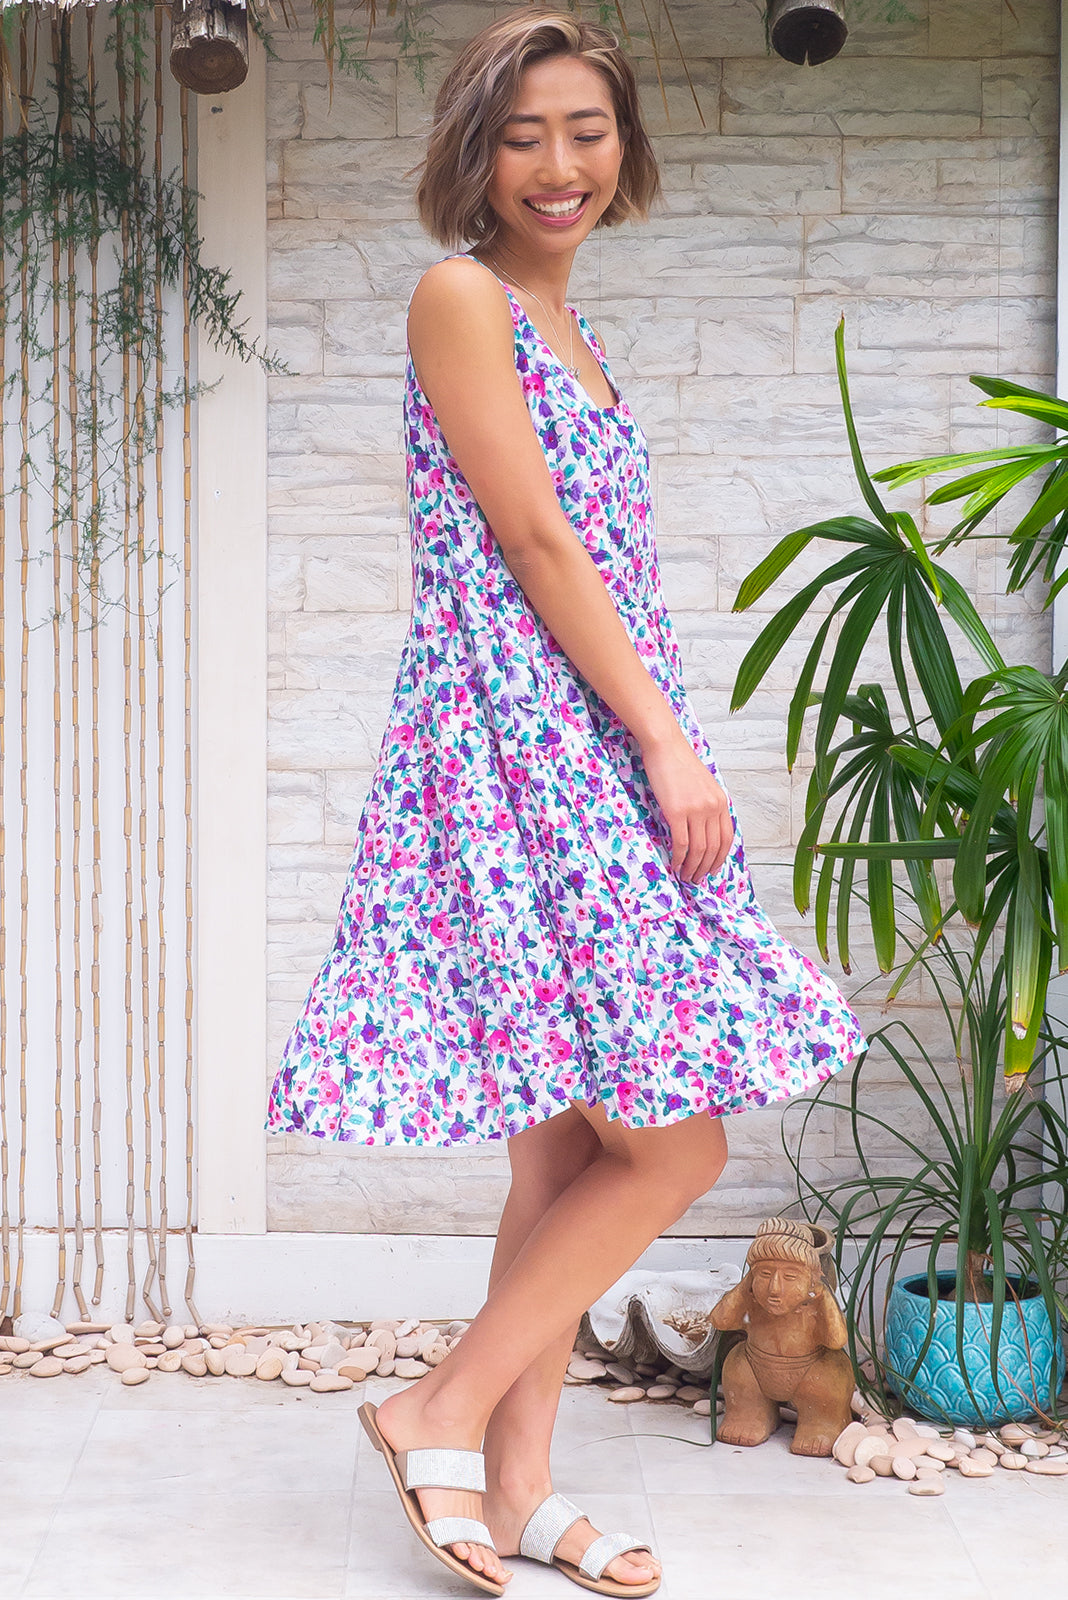 Jina Magenta Dress is a slip on, loose-fit short dress featuring scooped neckline, lined bust, side pockets, tiered, full skirt and 100% rayon in white base with pink and purple floral print.